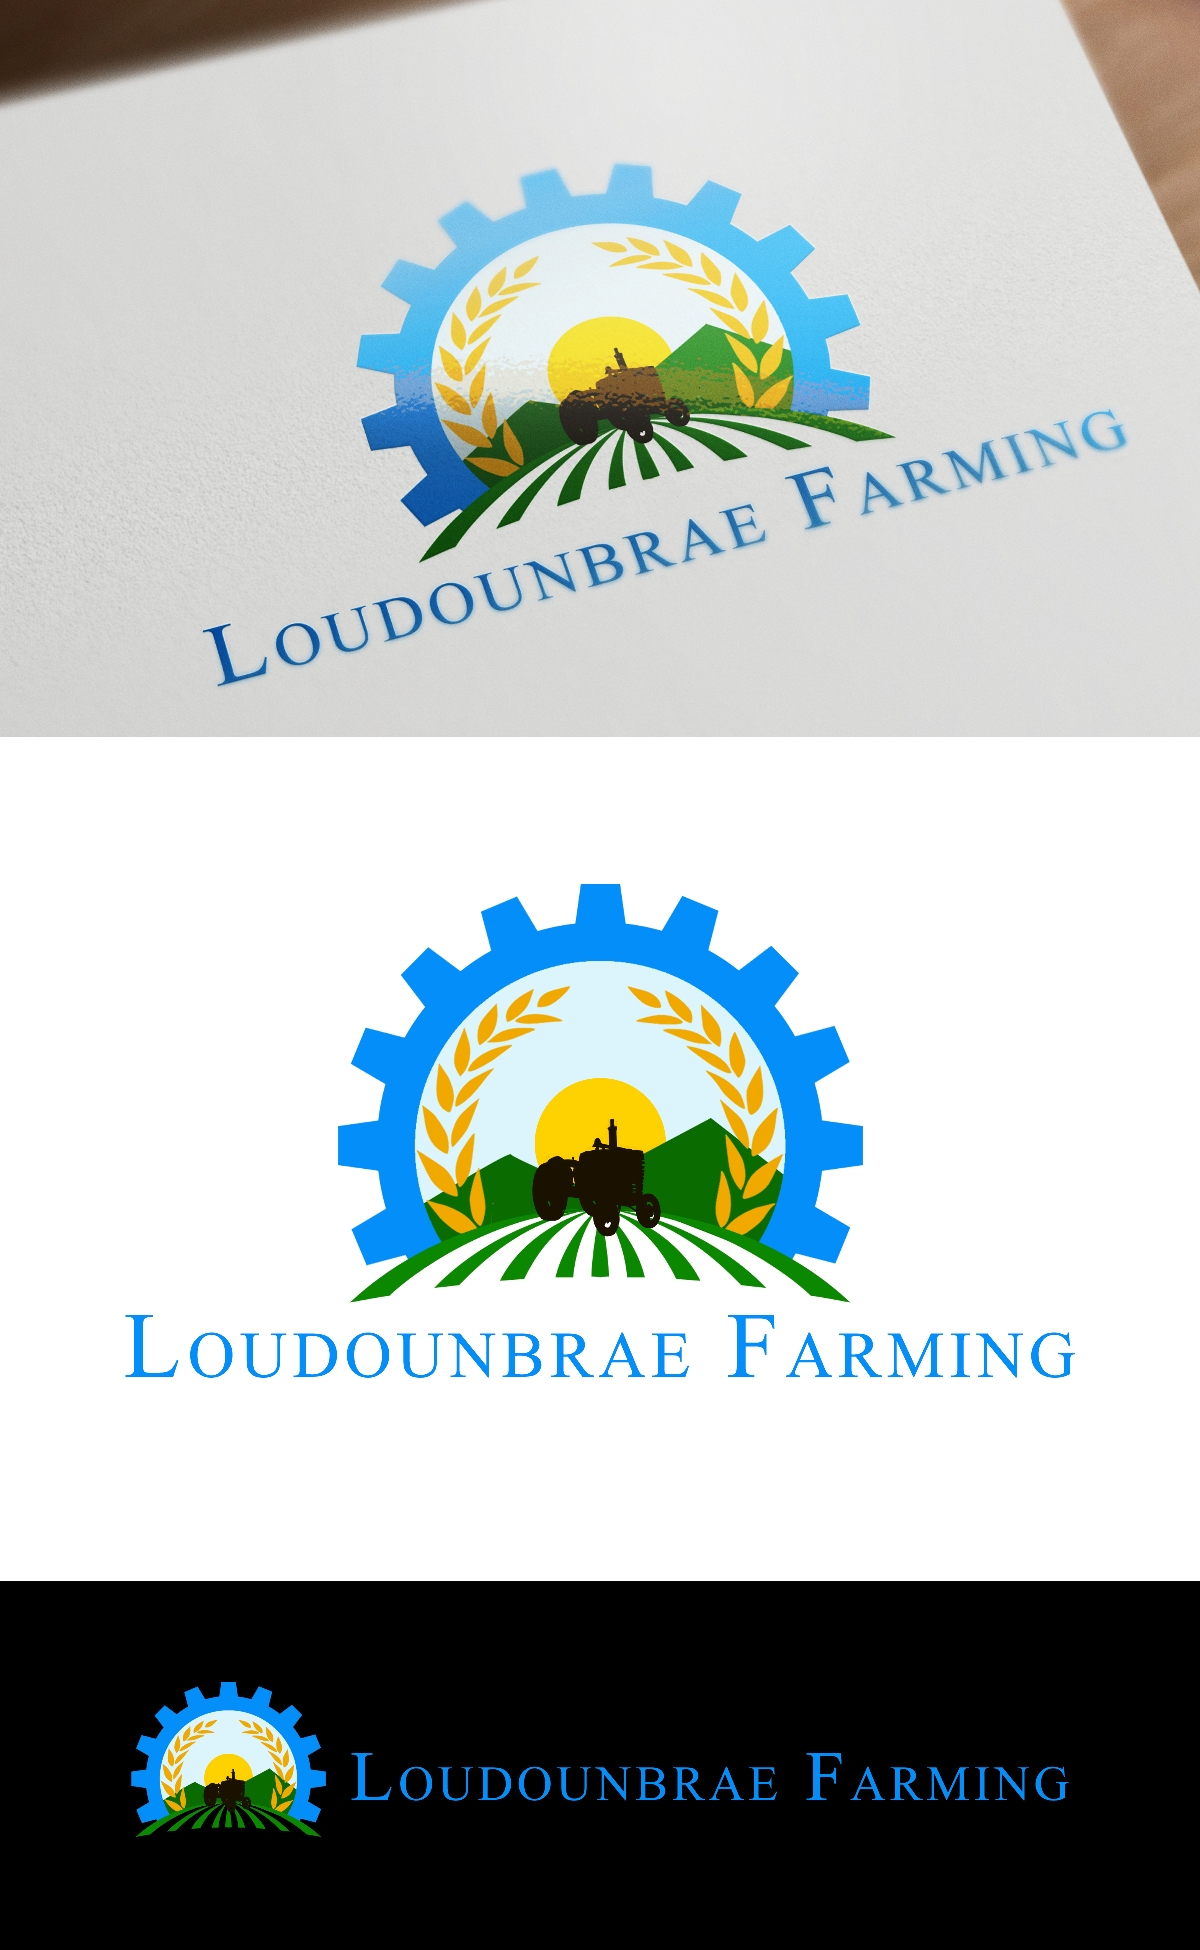 Logo Design by Juan_Kata - Entry No. 40 in the Logo Design Contest Creative Logo Design for Loudounbrae Farming.